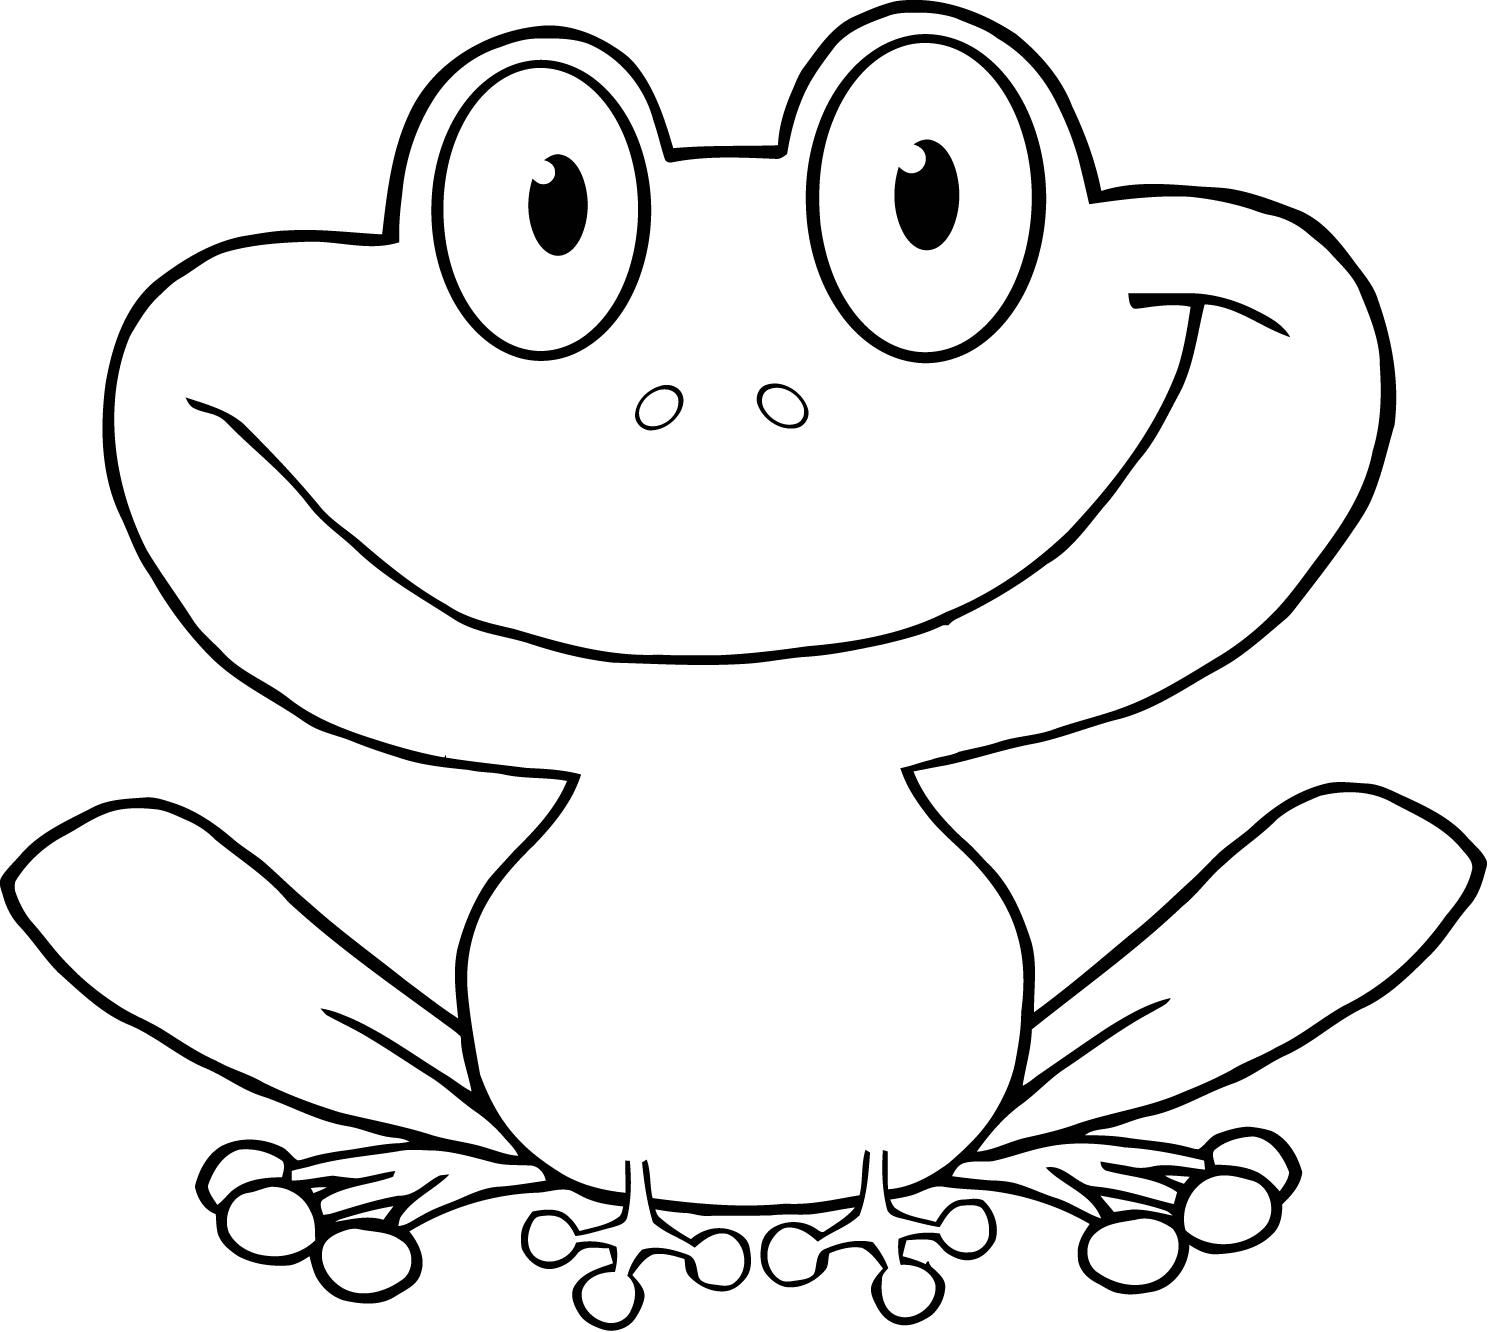 Pics for cute baby frog drawing